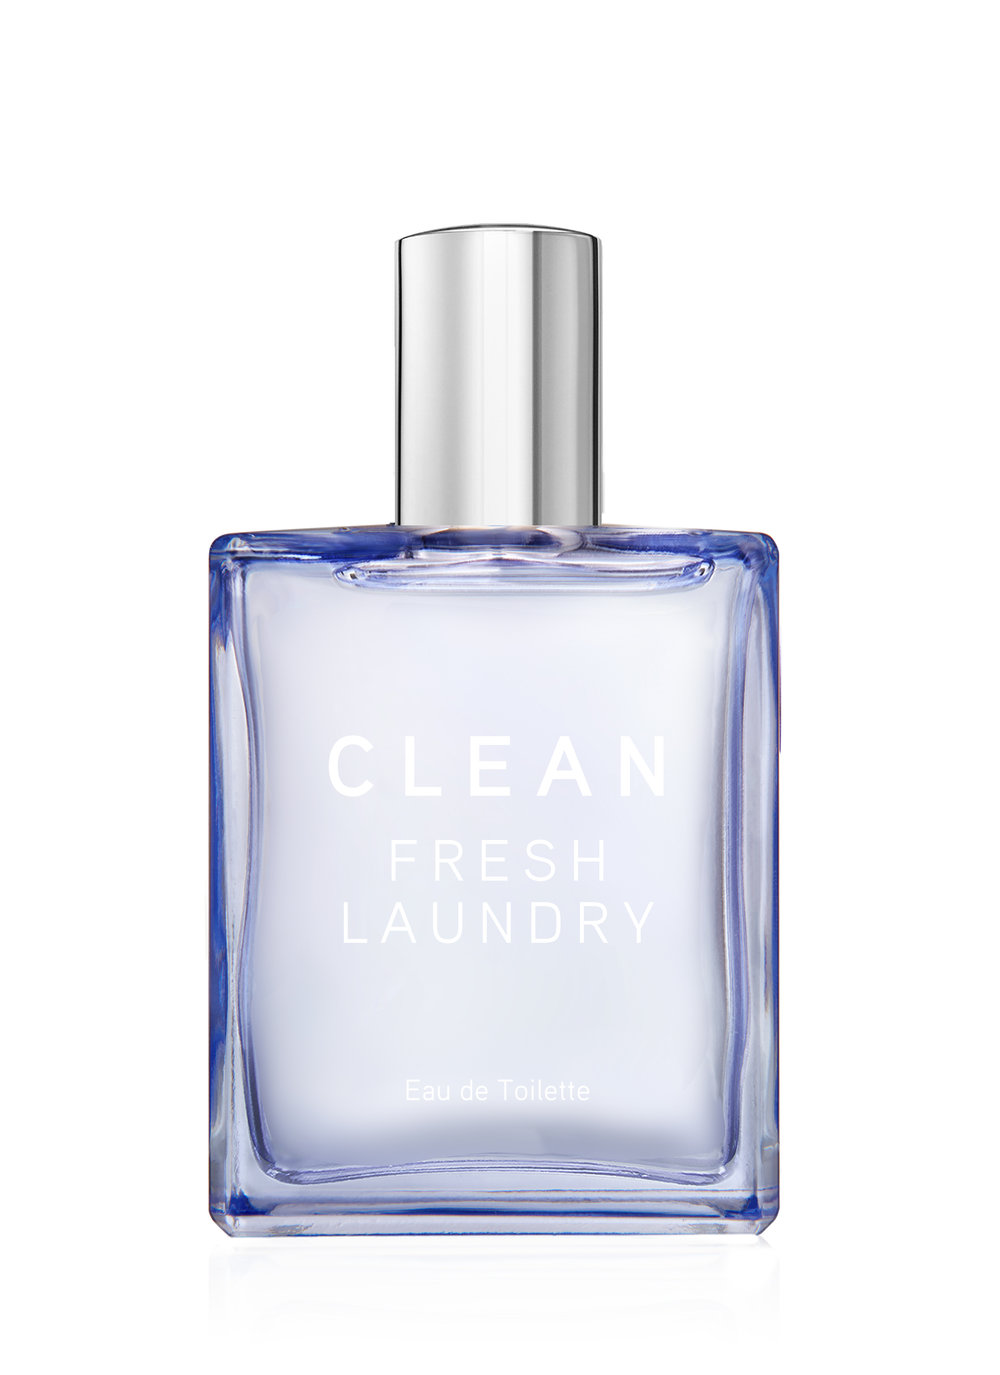 EDT_FRESH LAUNDRY_BOTTLE_122117.jpg